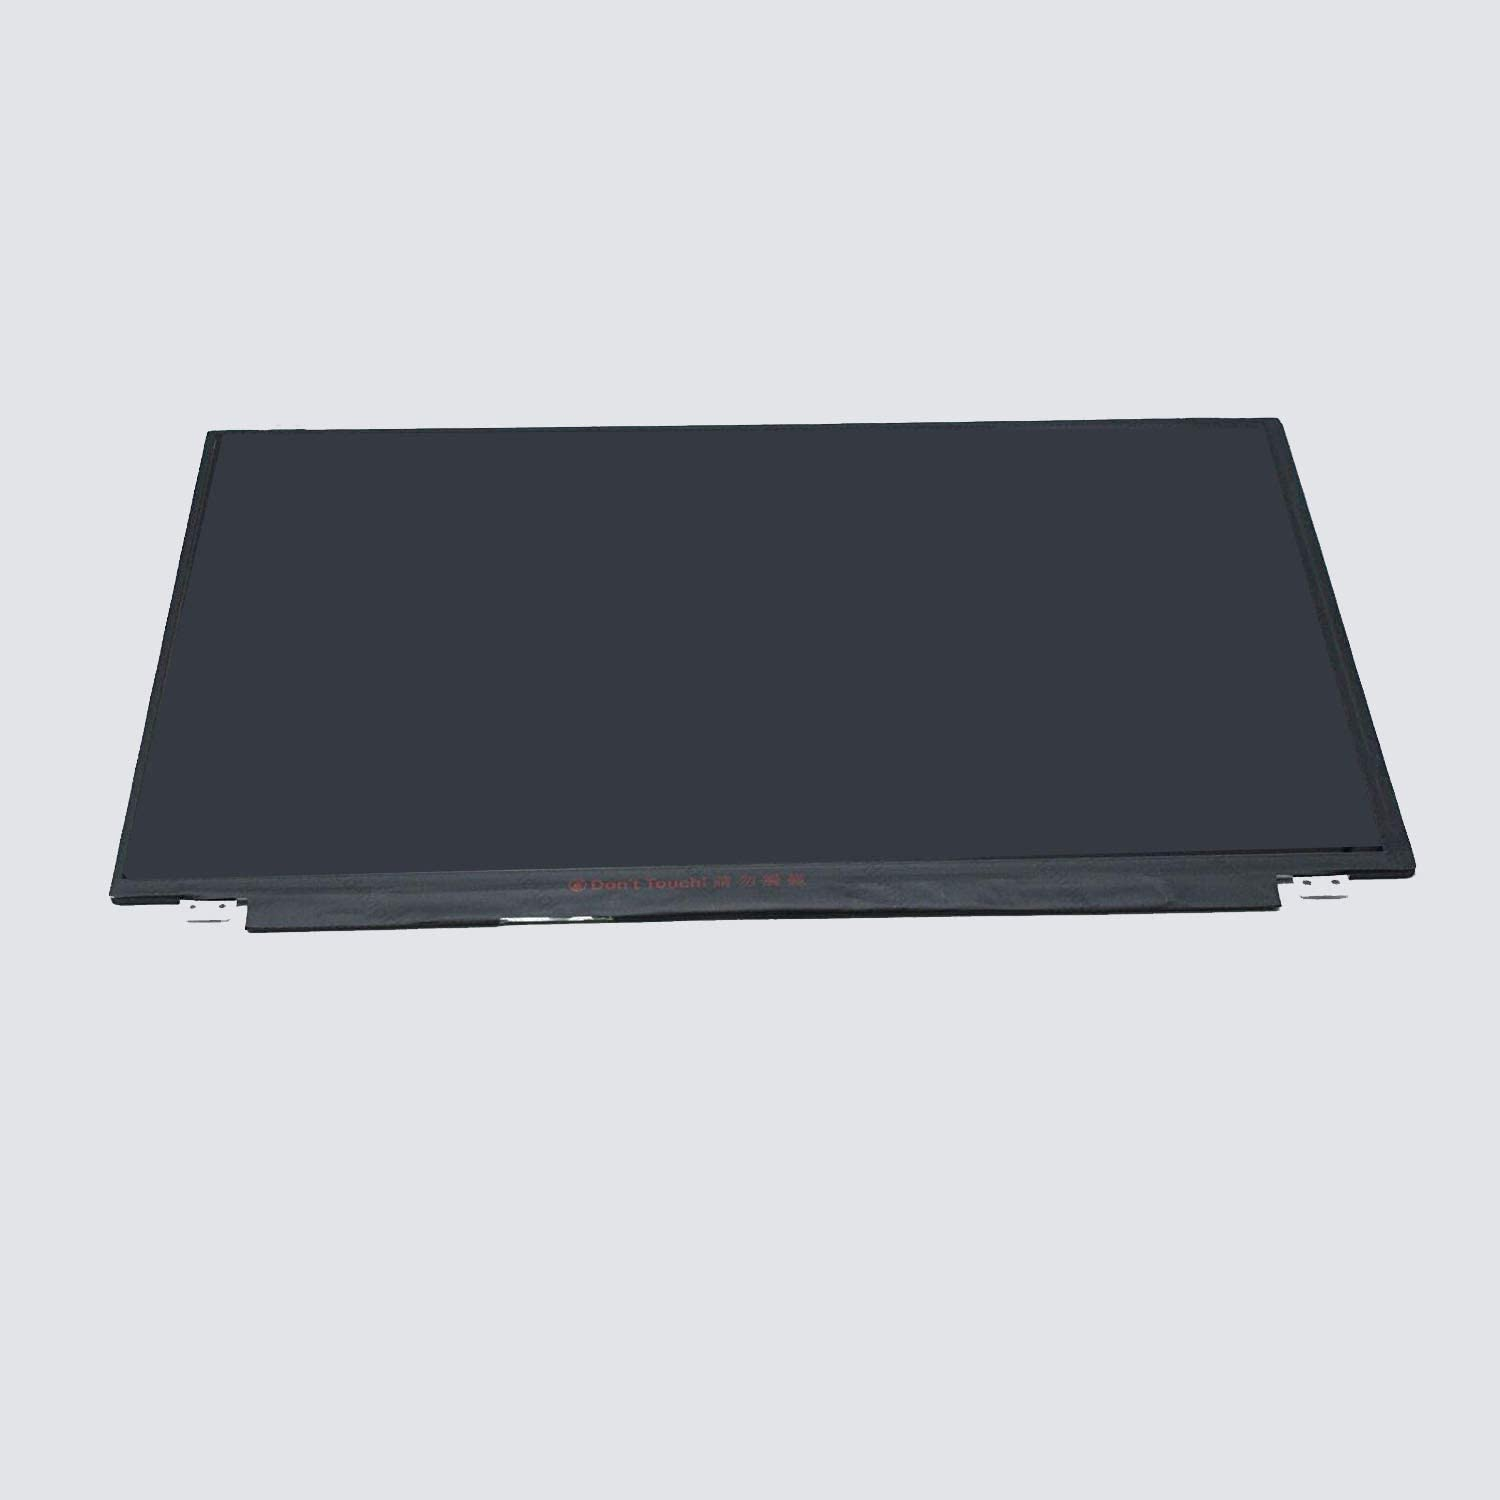 Bblon 15.6'' LCD Display Touch Screen Glass Panel B156XTK01.0 for Dell Inspiron 3000 Series